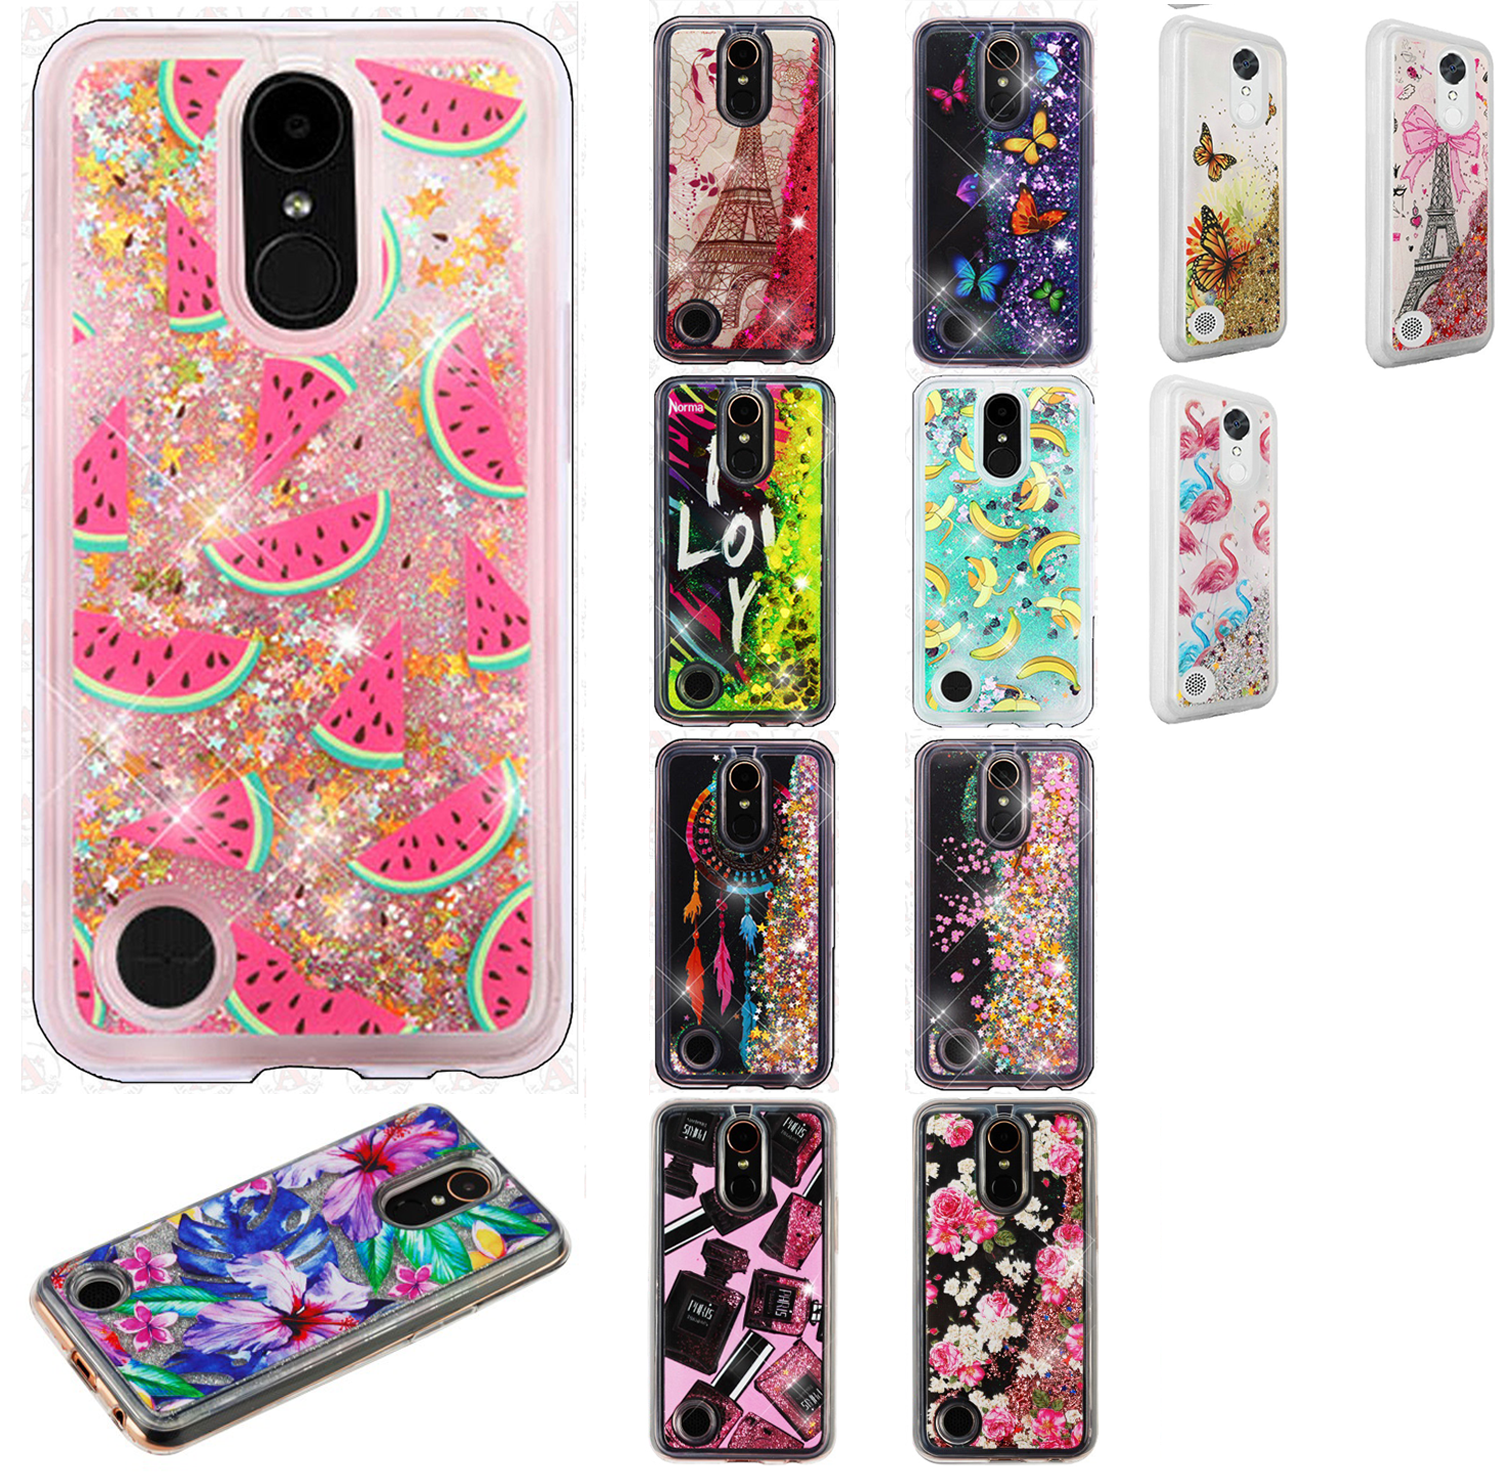 new product 39bb0 a2849 For LG K20 Plus Liquid Glitter Quicksand Hard Case Phone Cover + ...